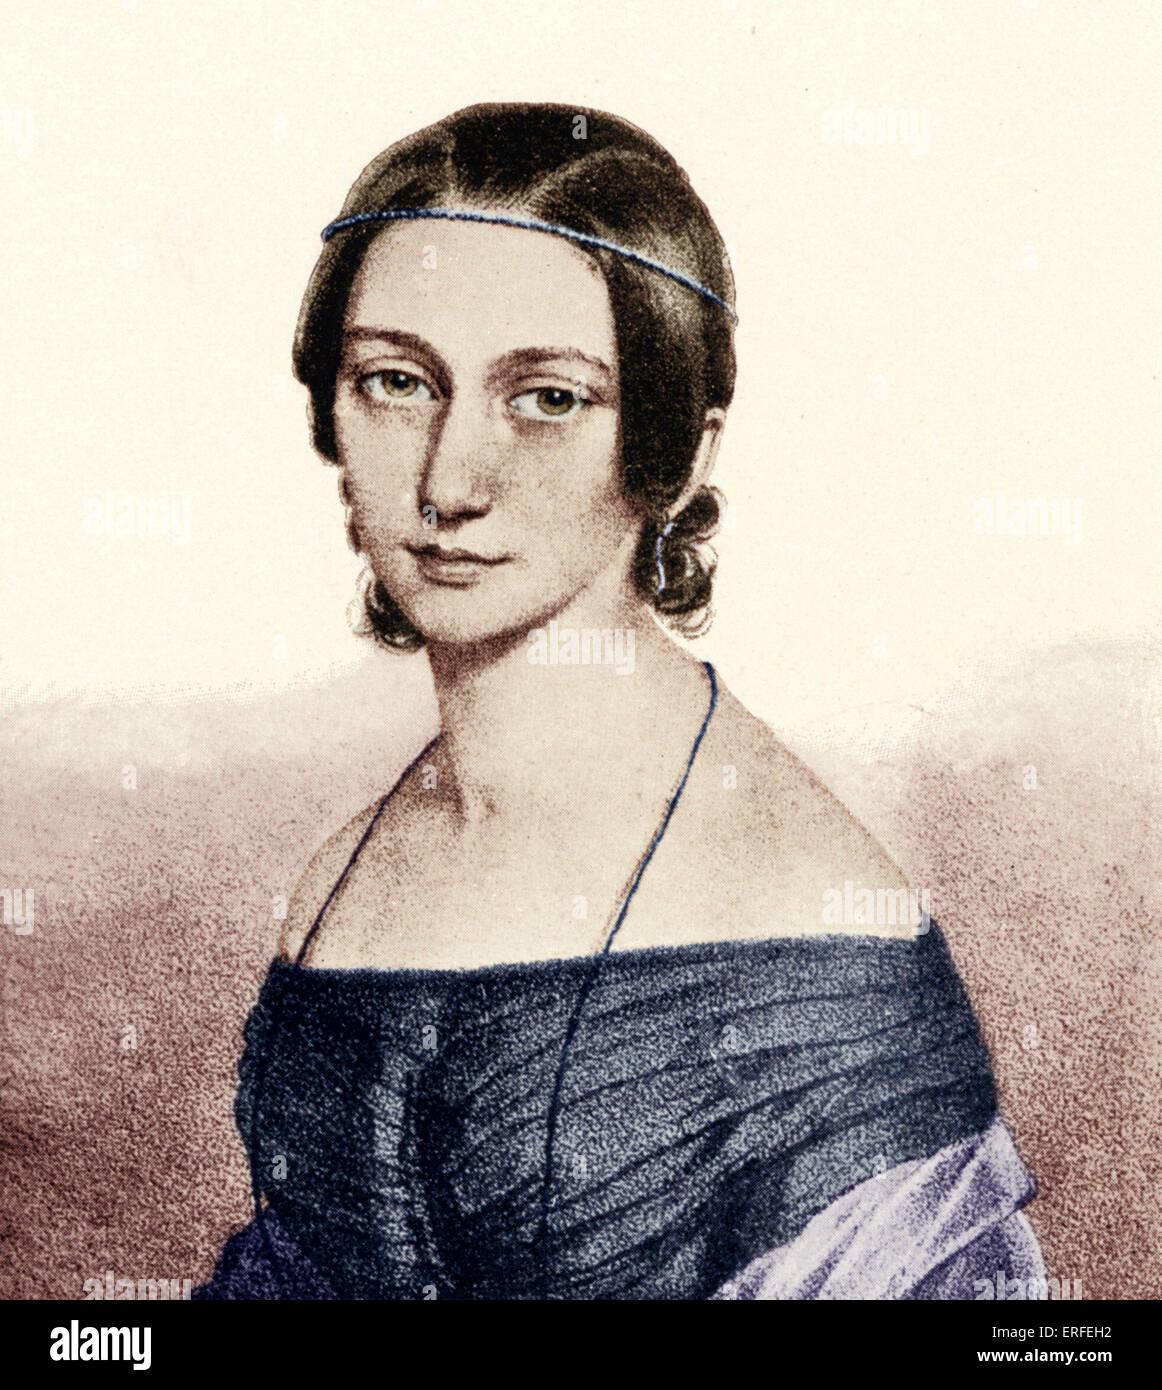 clara wieck Clara schumann this absorbing and award-winning biography tells the story of the tragedies and triumphs of clara wieck schumann (1819-1896)—at once artist, composer, editor, teacher, wife, and mother of eight children.